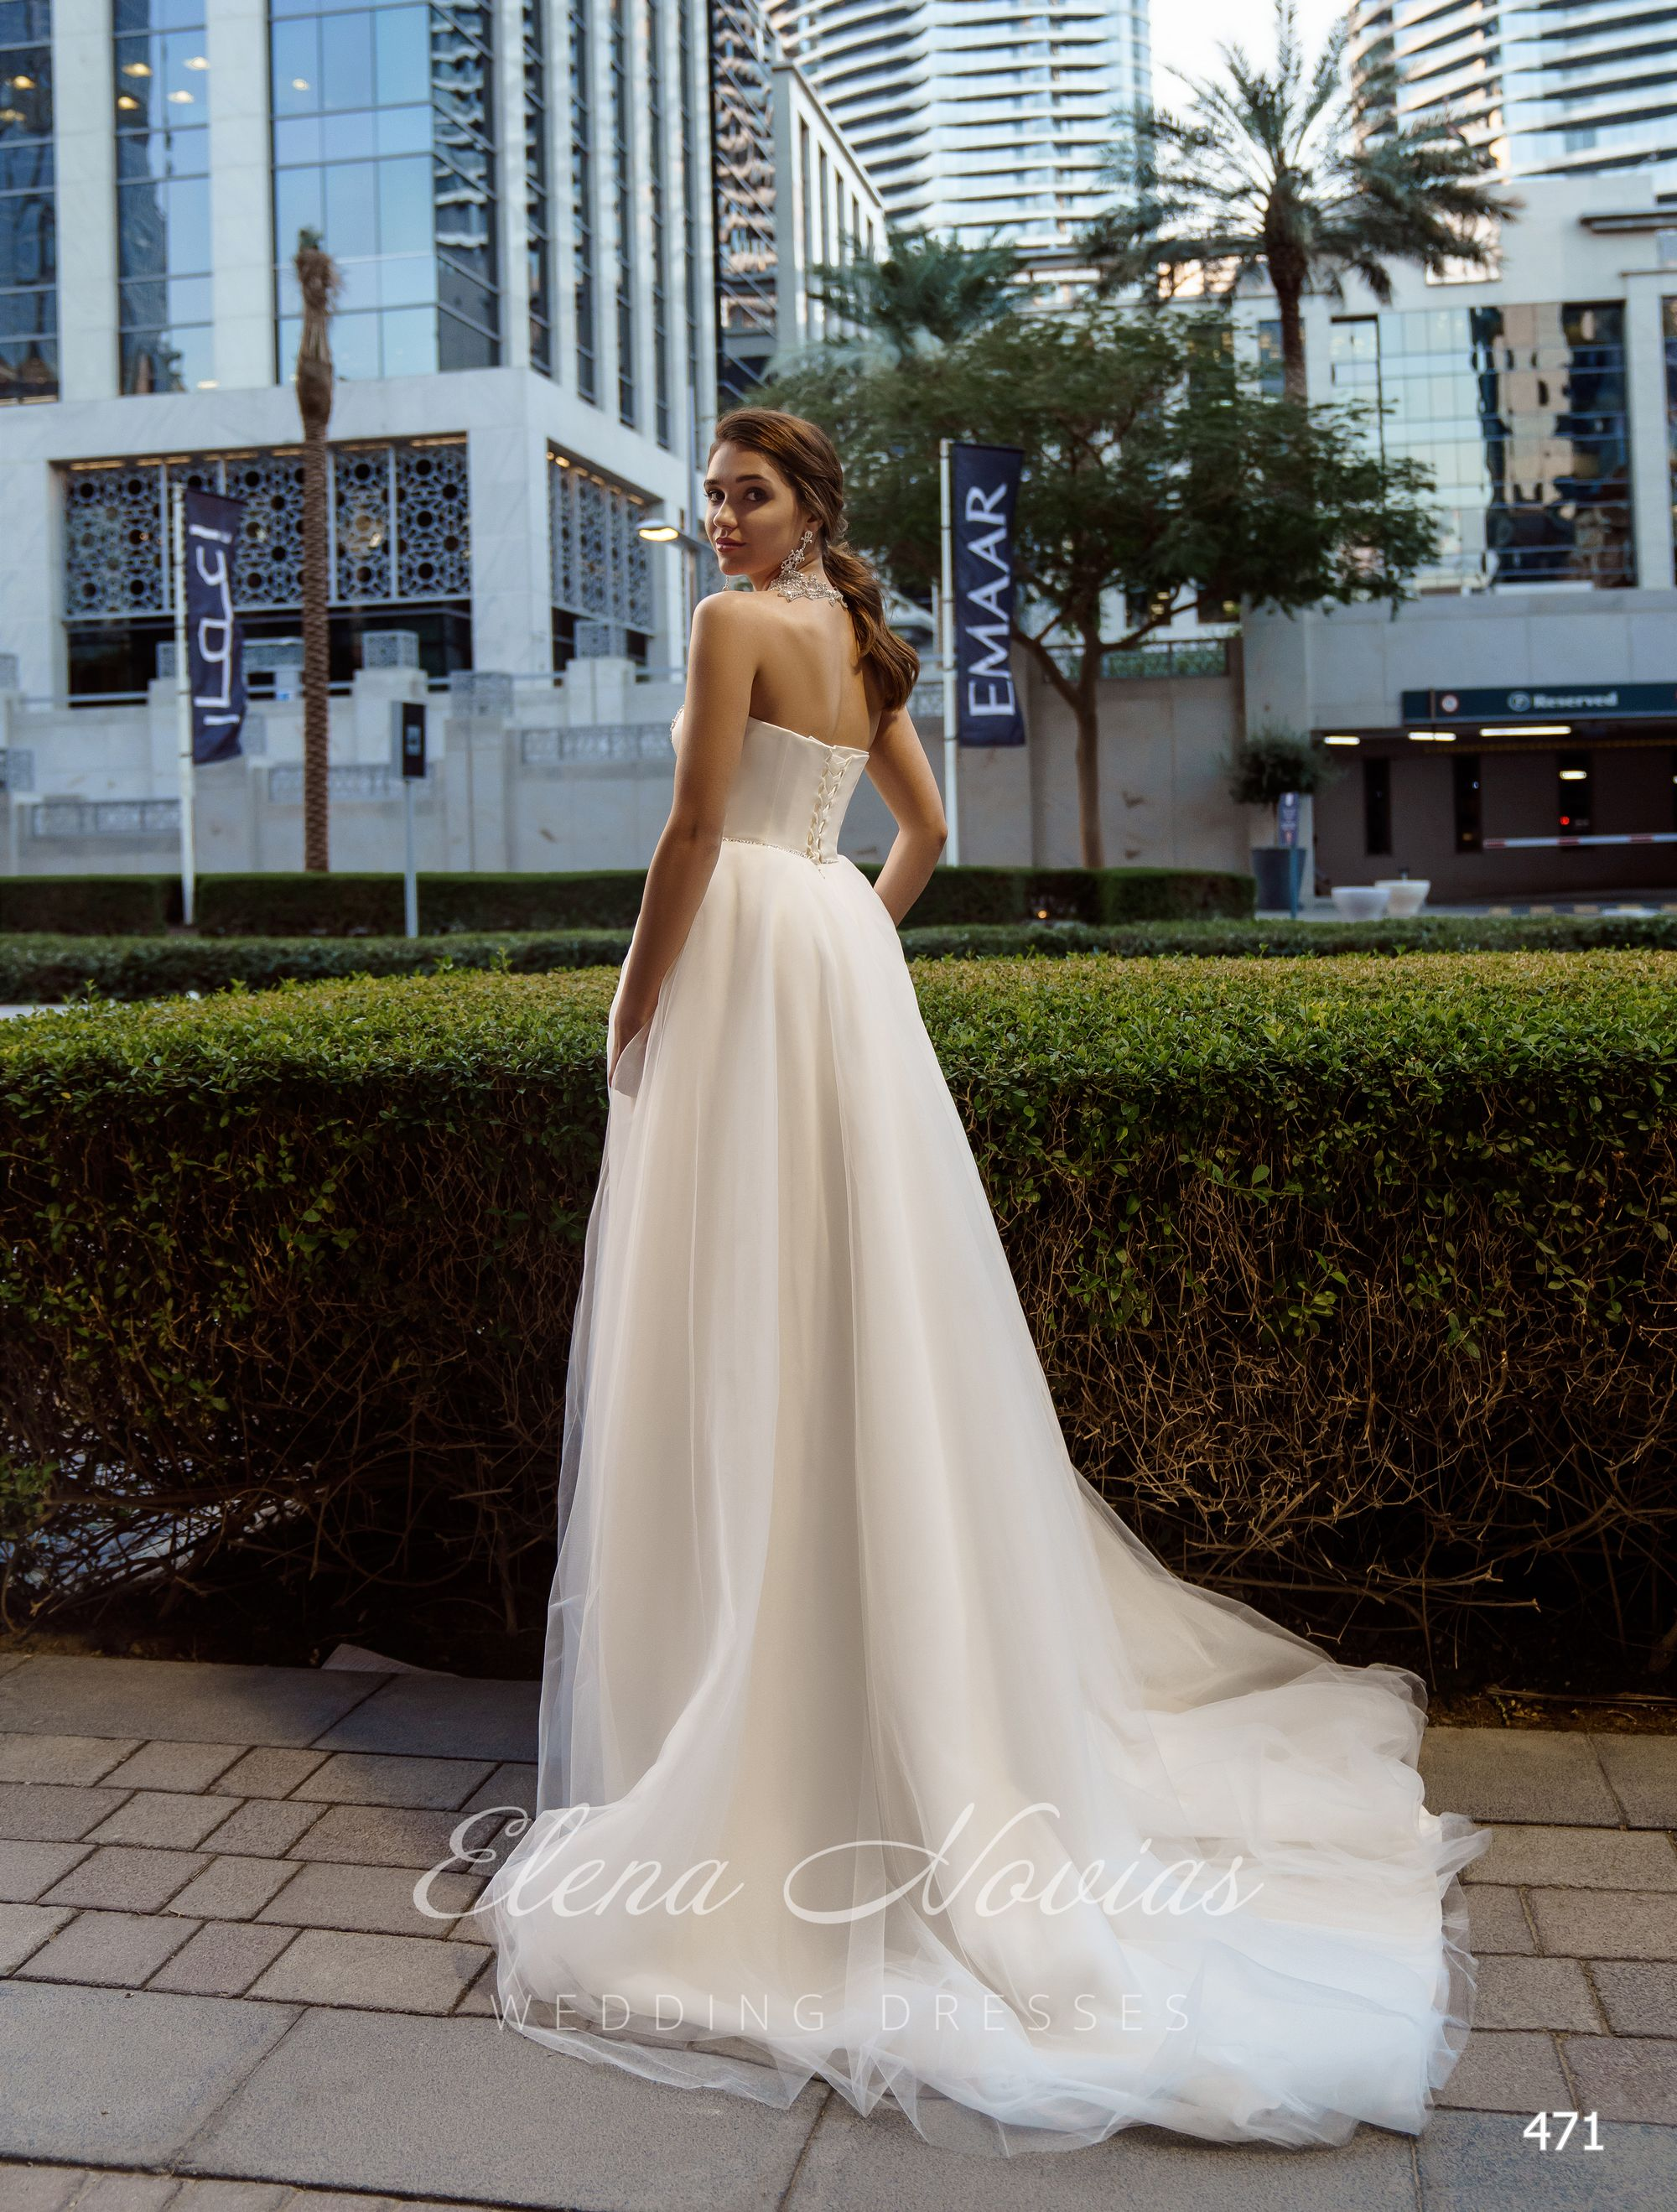 Wedding dresses 471 2